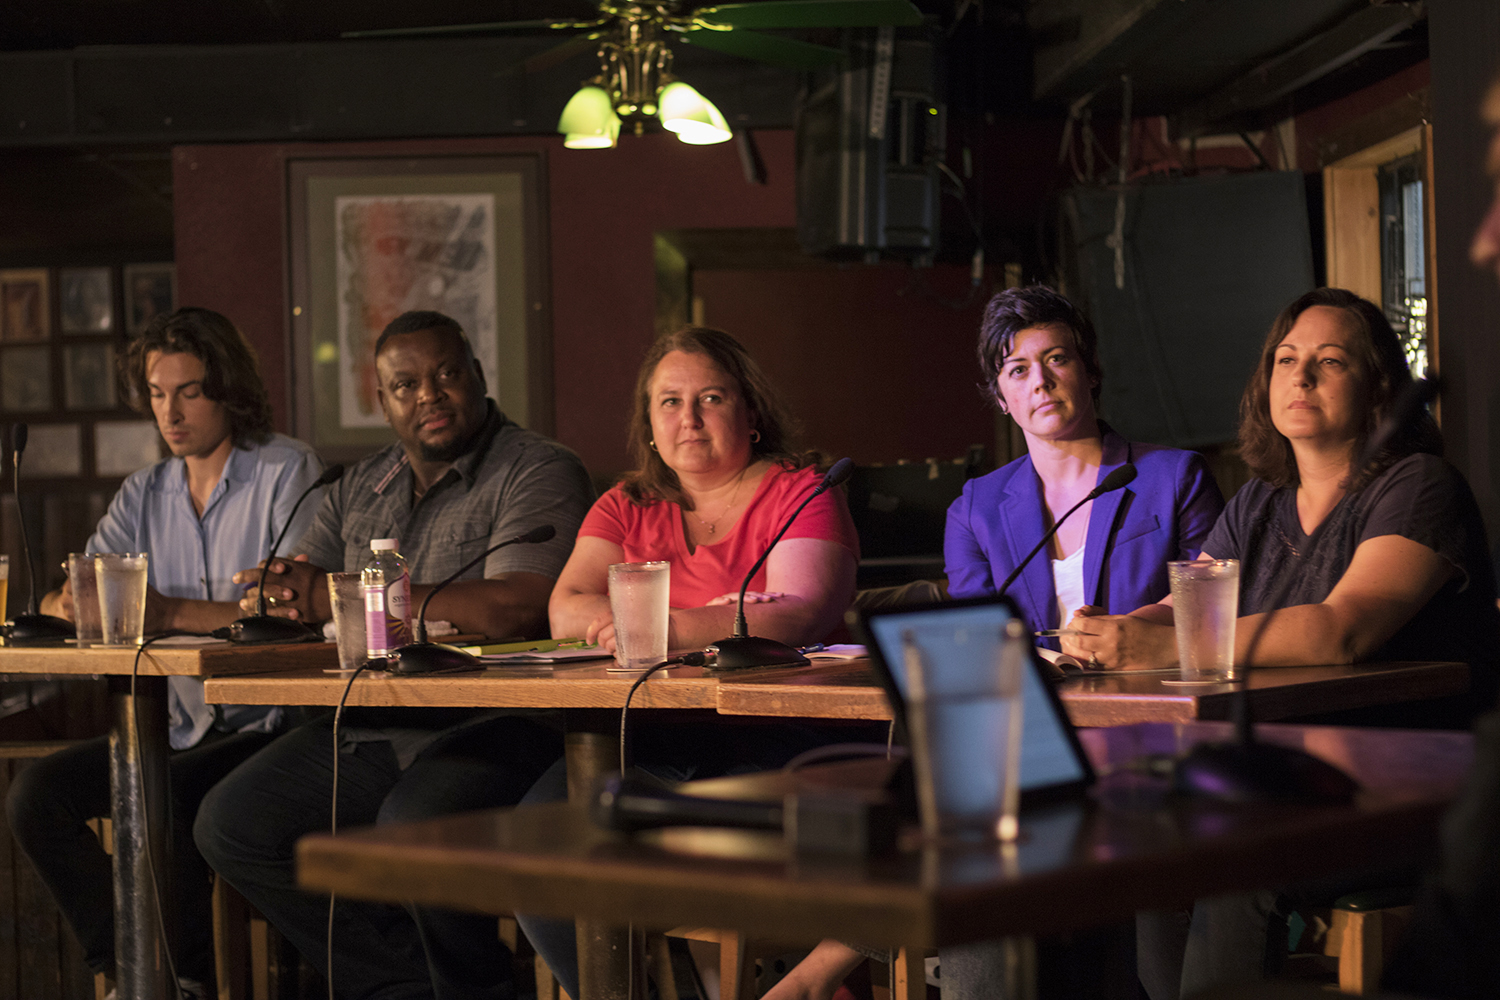 City Council special election candidates shared their vision for Iowa City at the Mill.